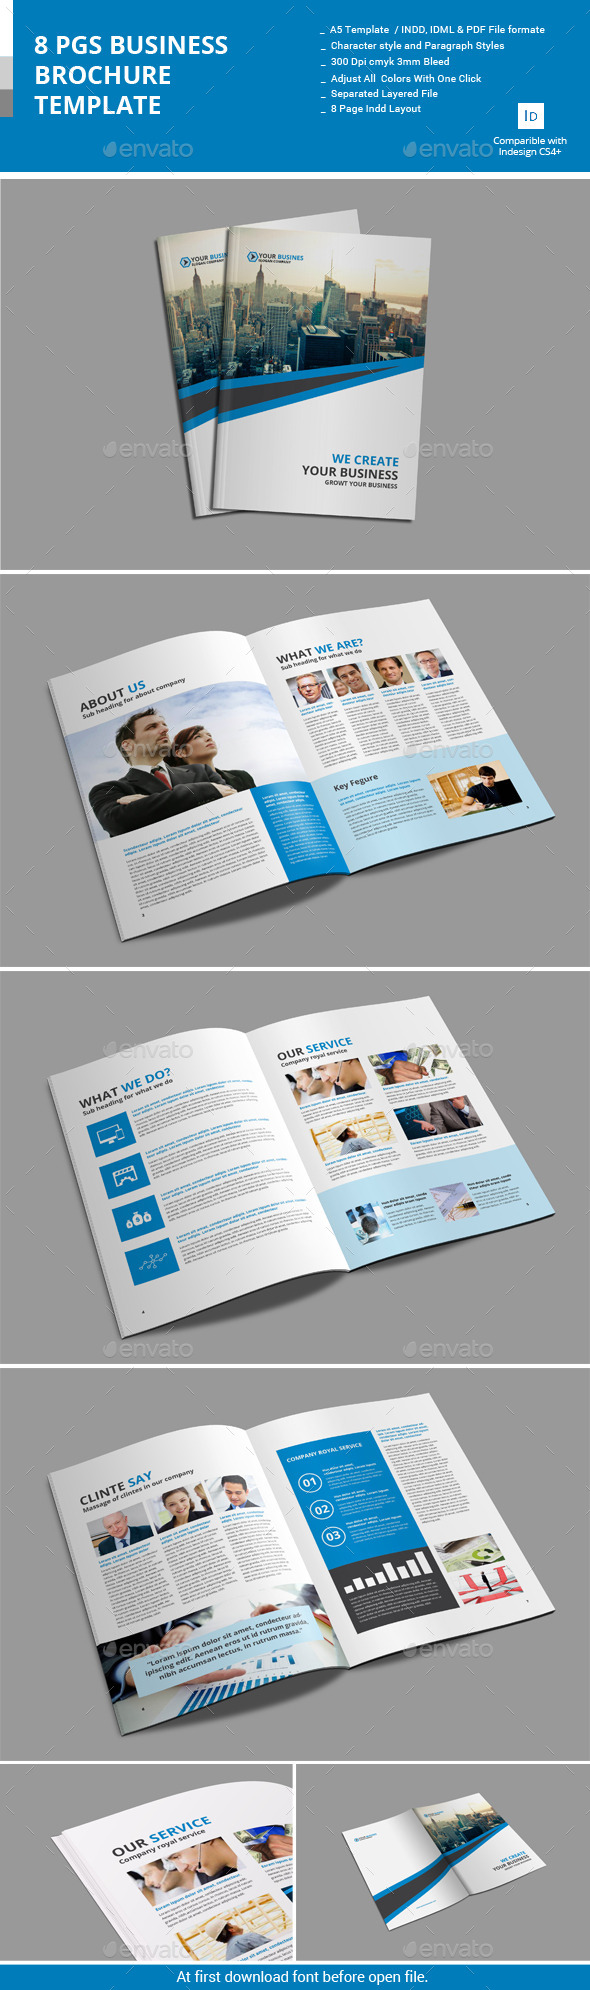 GraphicRiver 8 Pages Business Brochure Template 10993897